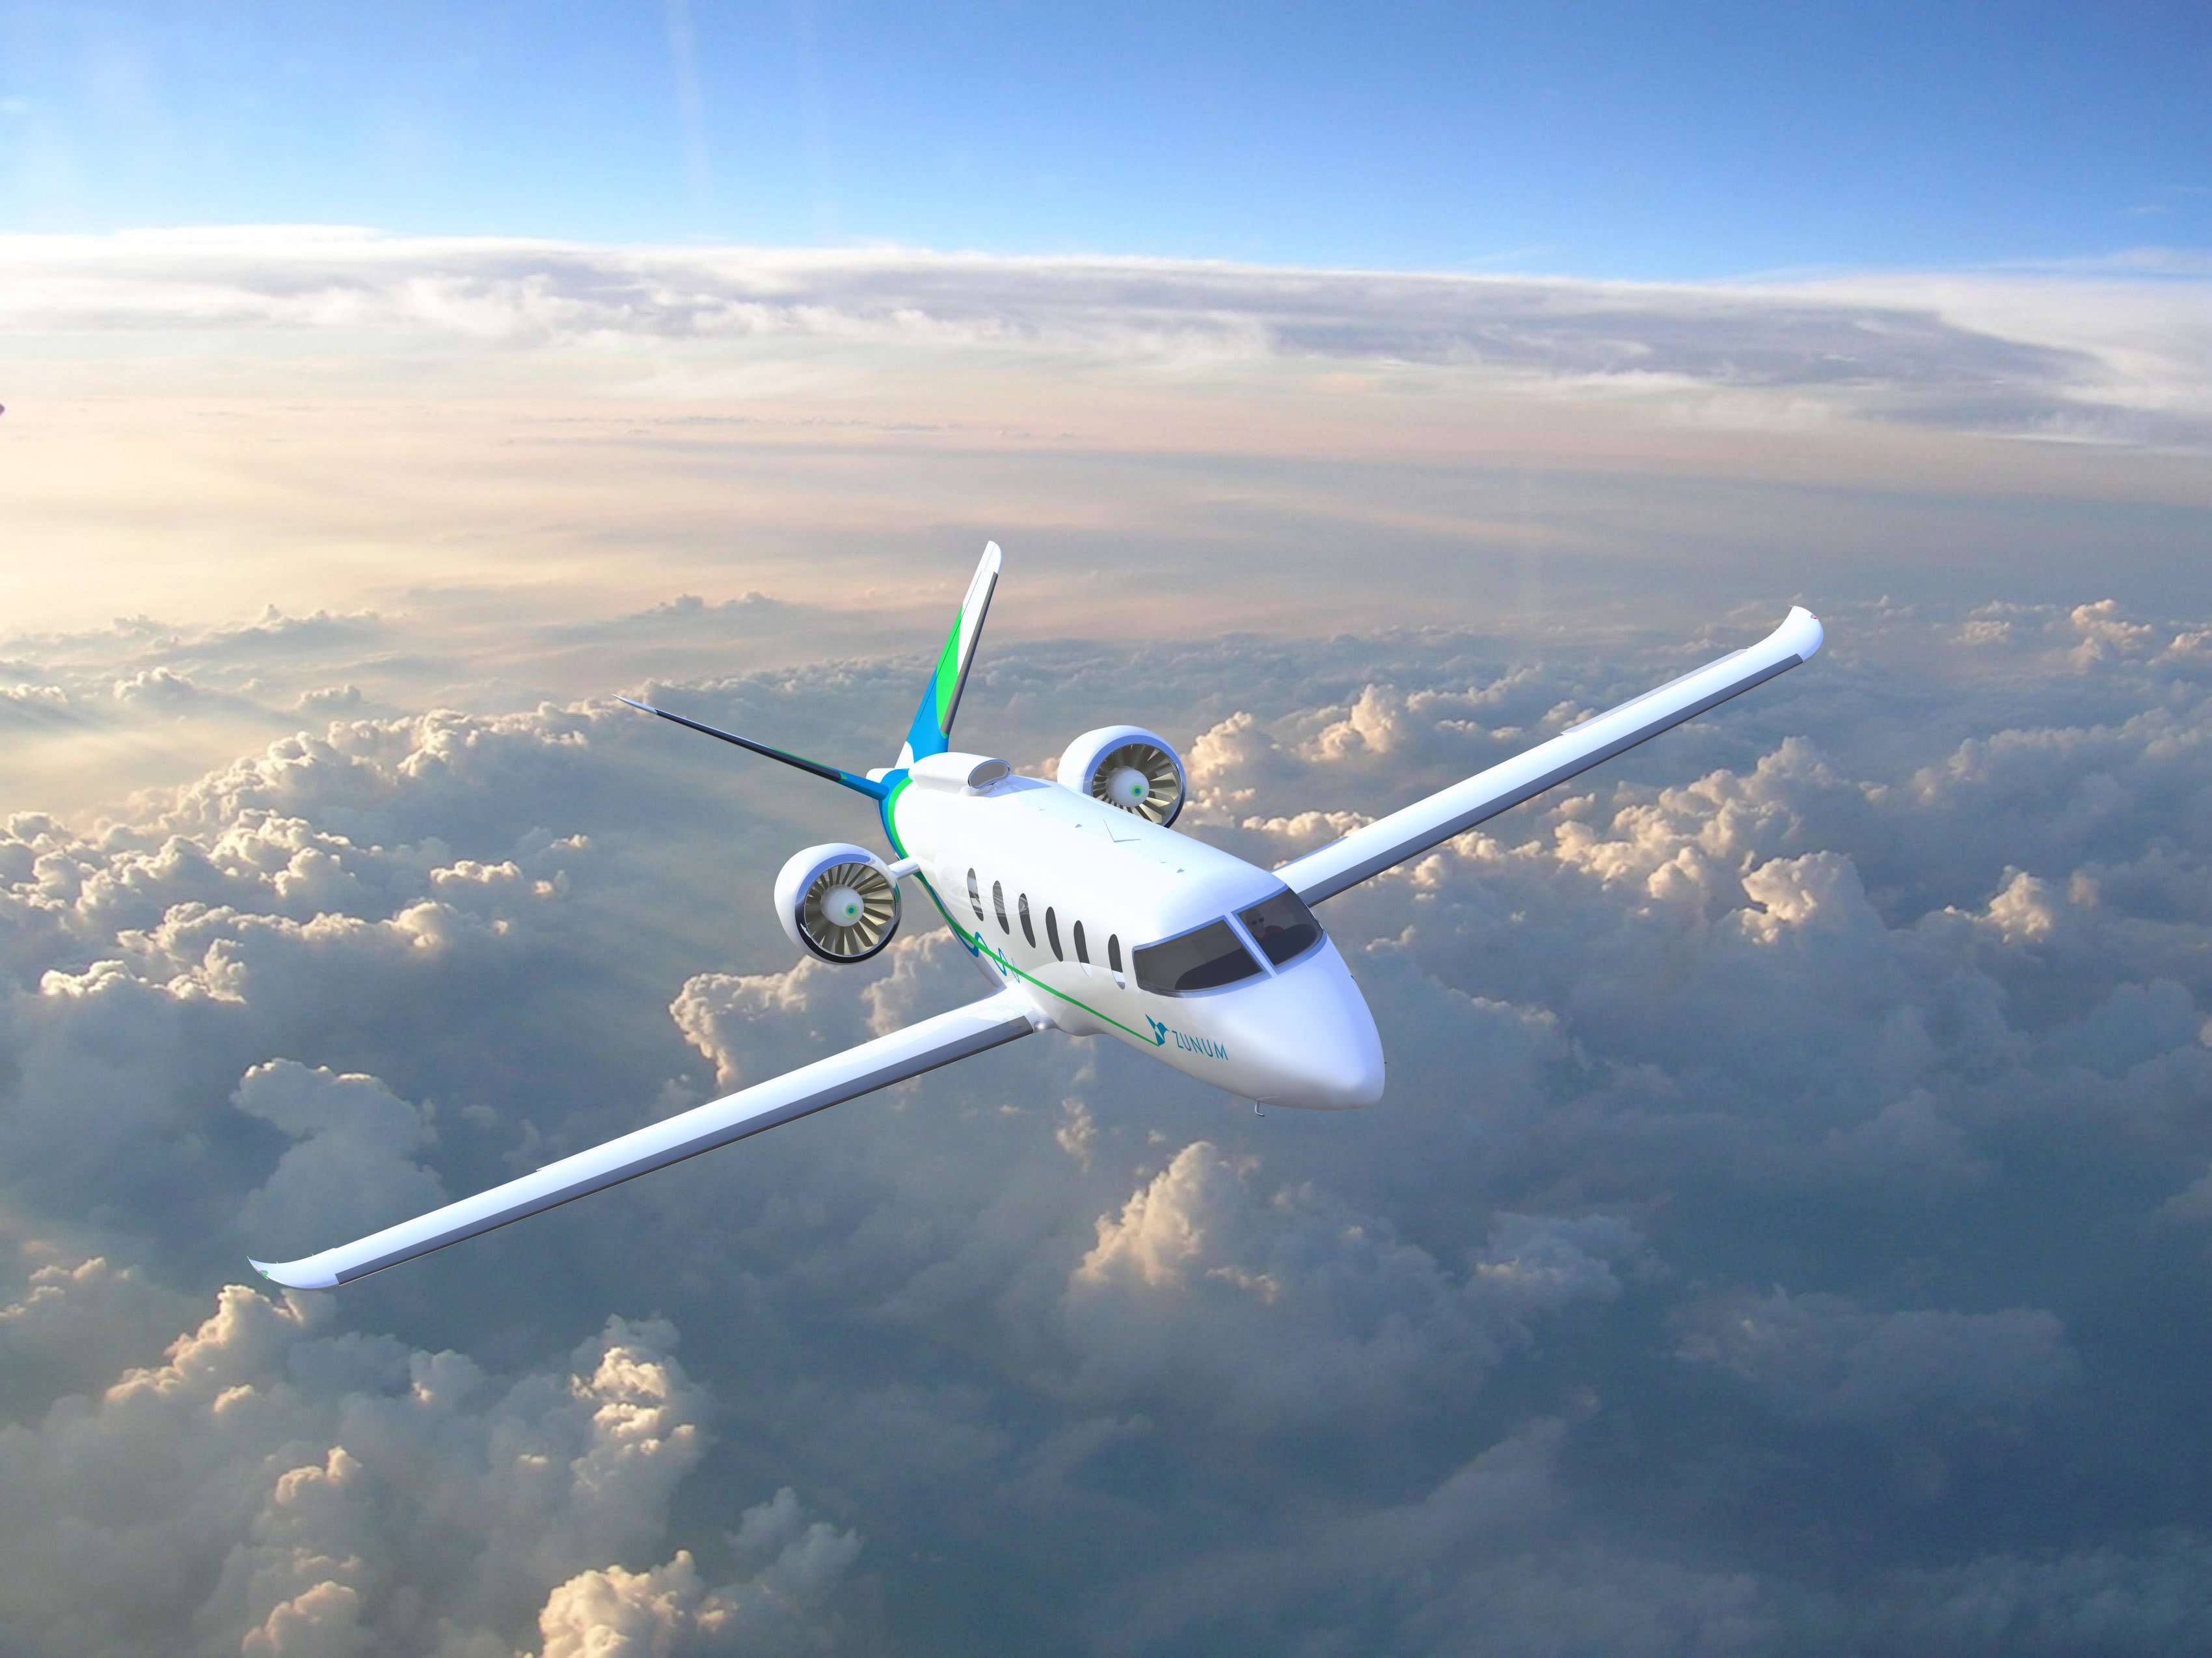 Zunum 2022 aircraft in clouds